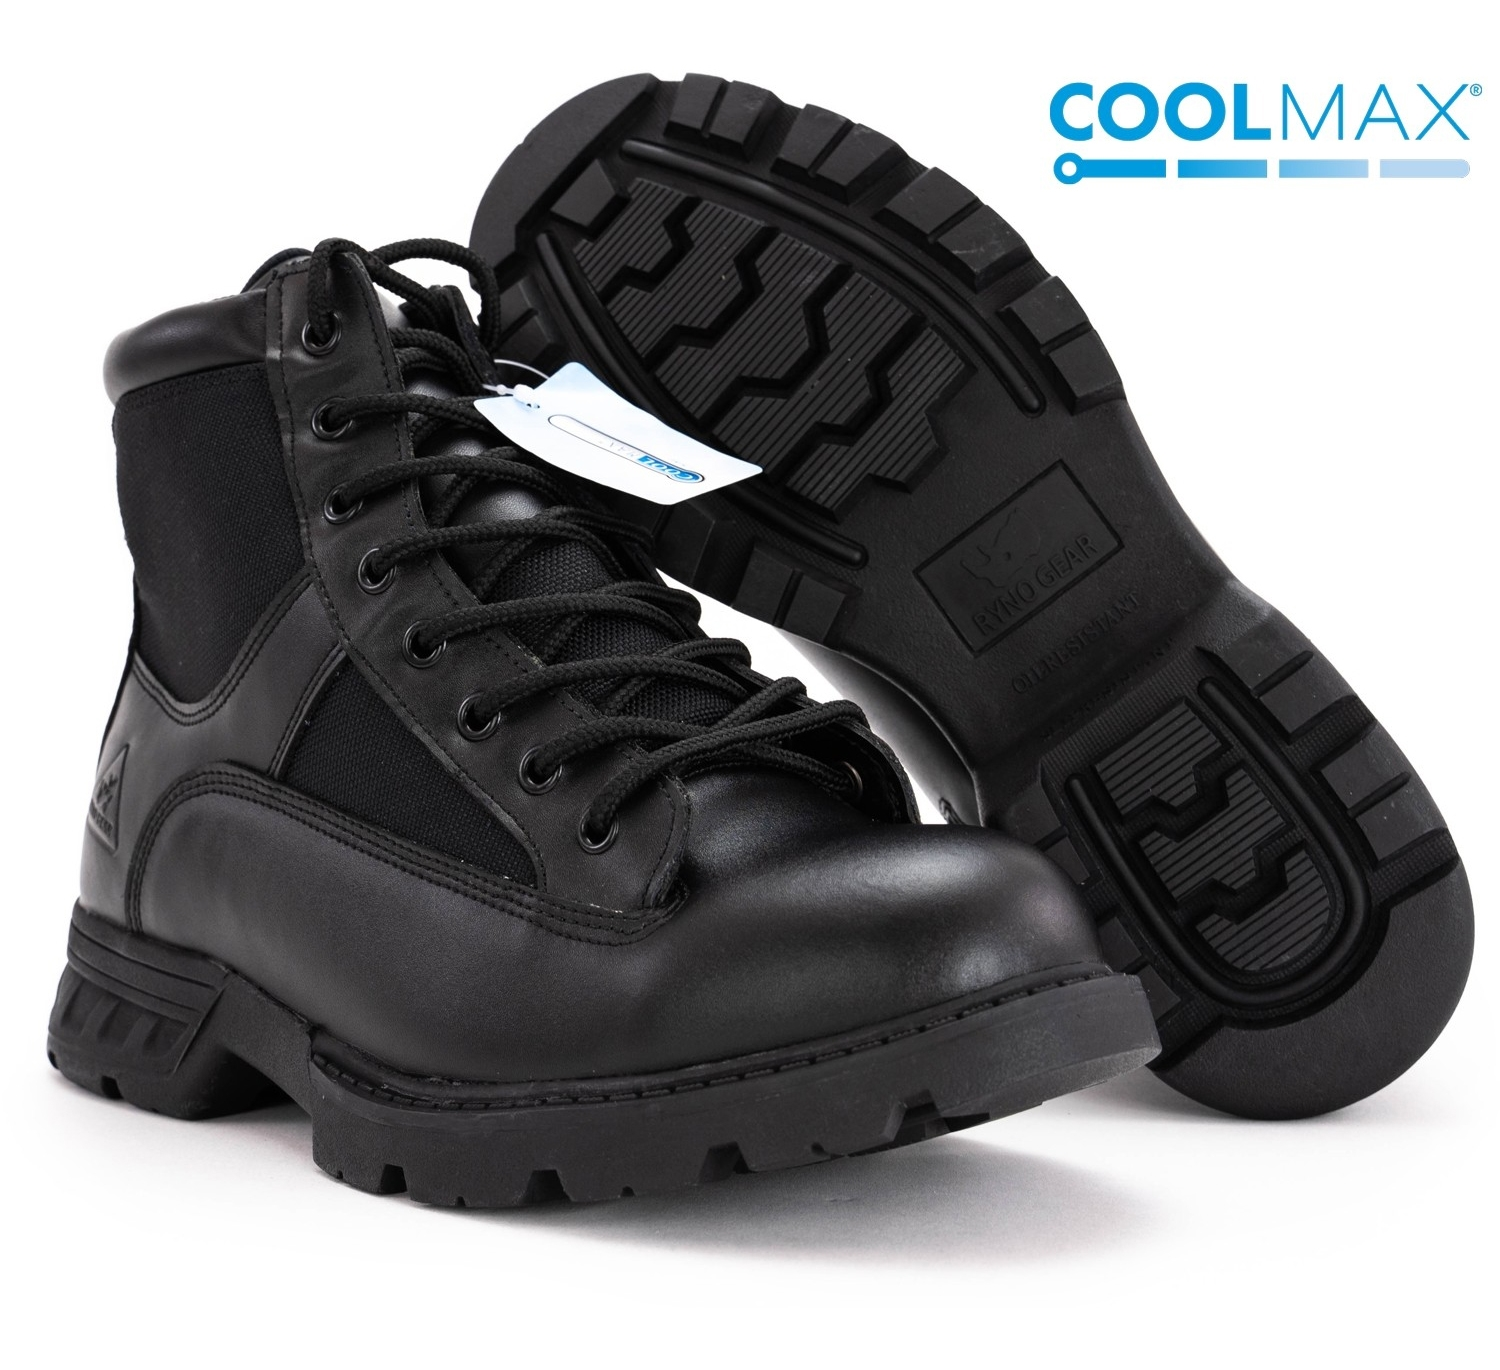 Ryno Gear Ry-Tac Coolmax Tactical Boots